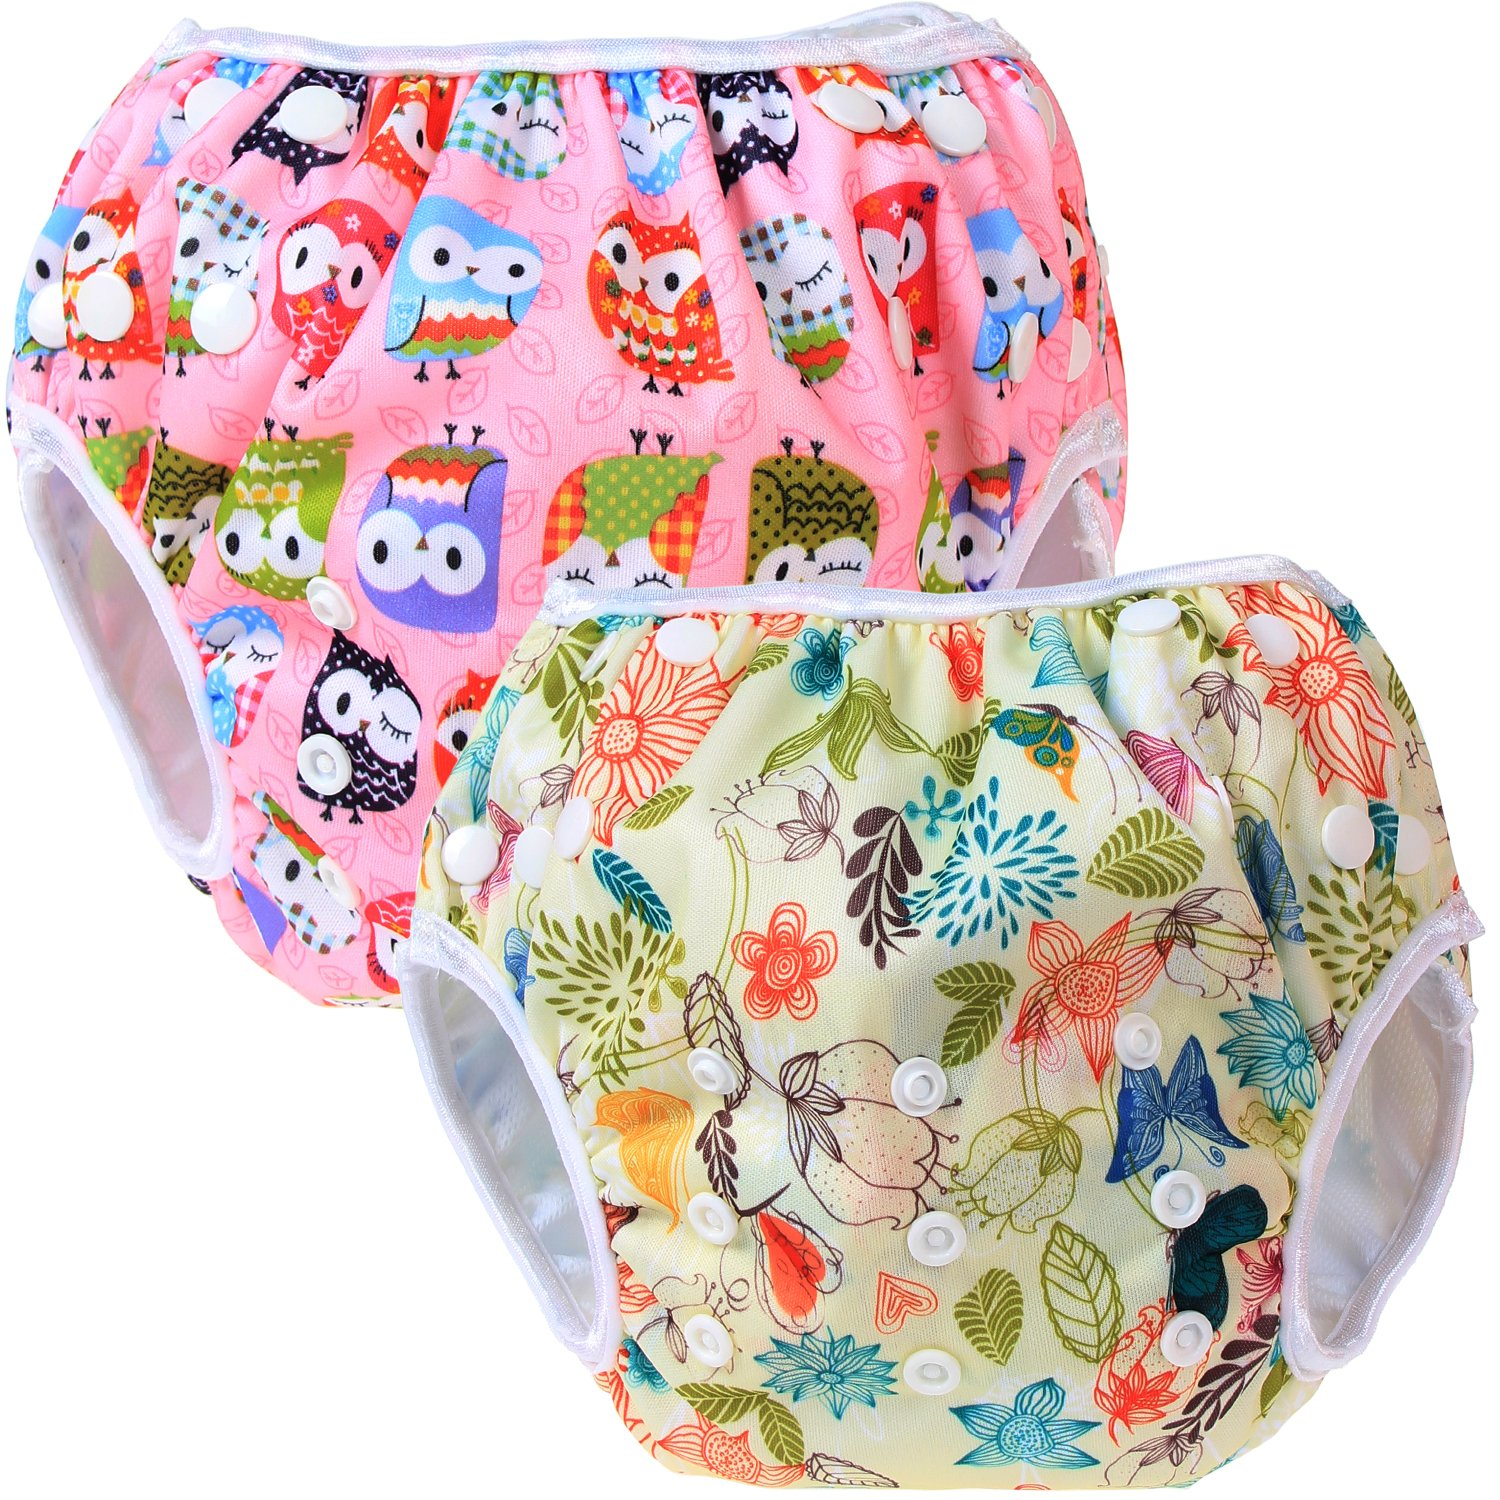 Teamoy Reusable Swim diapers Ideal for Swimming Lessons//Holiday 2 Pcs Pack Washable Swimming diapers for Baby Boys /& Girls